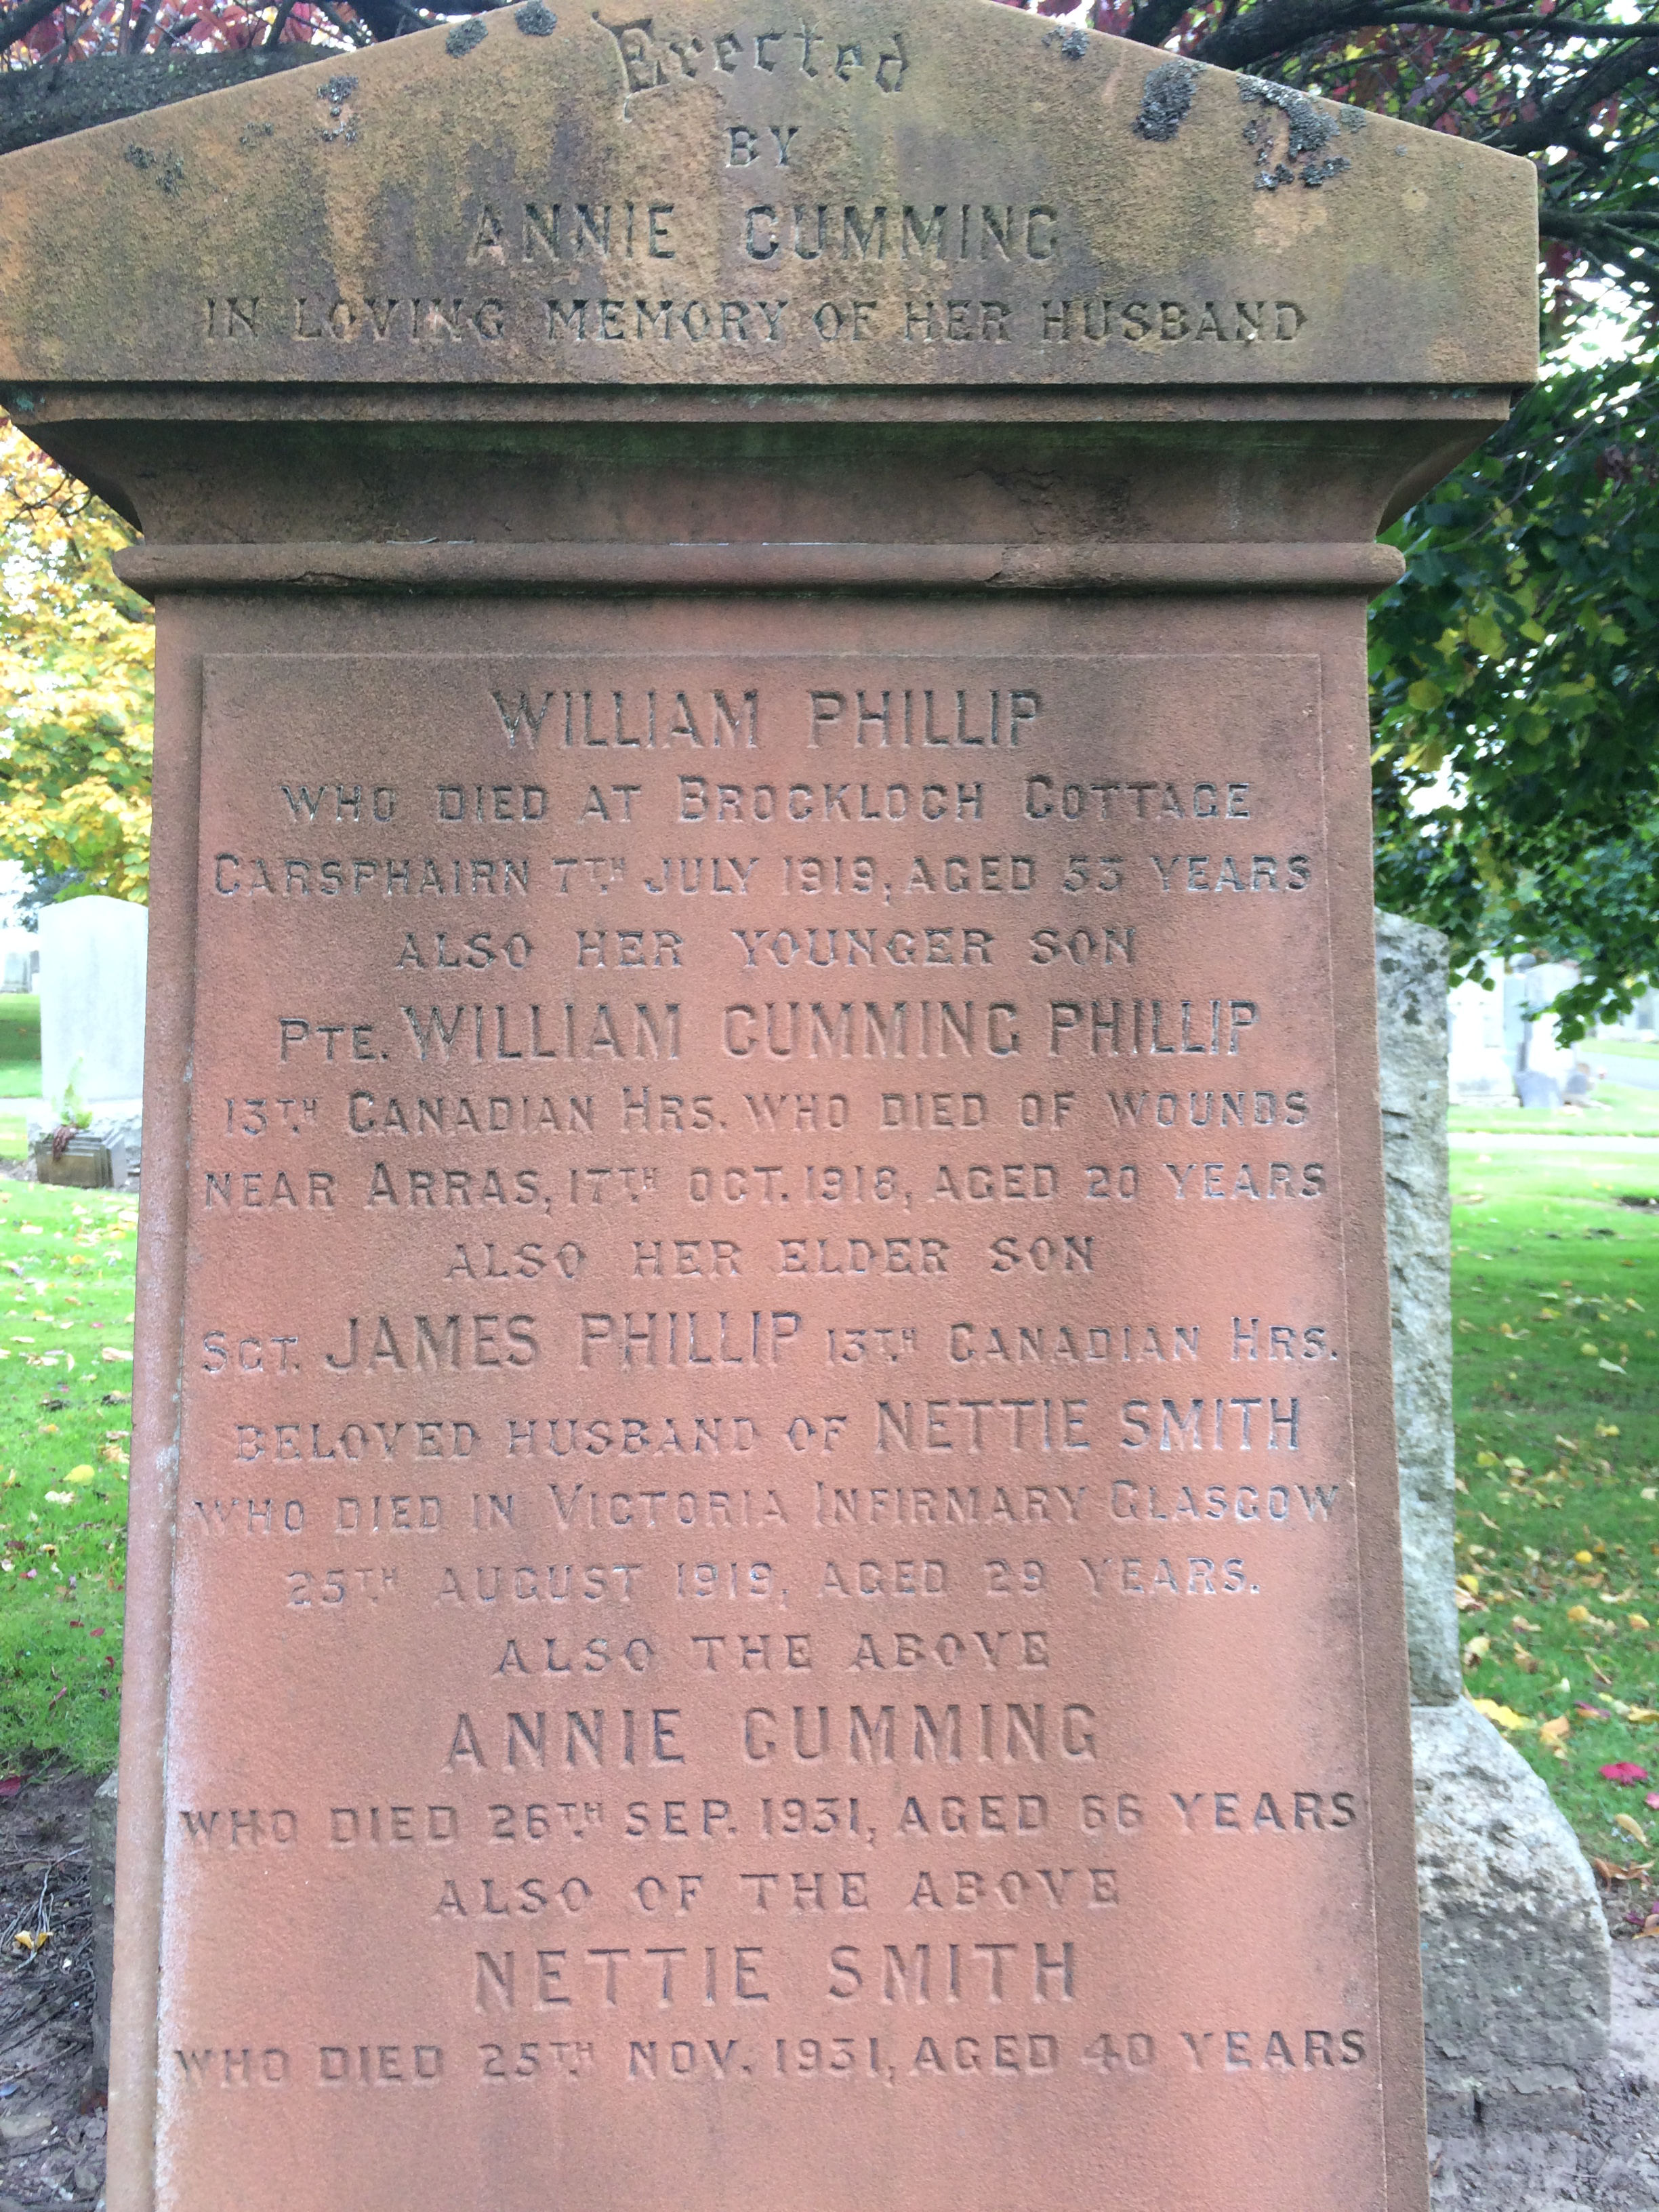 Family Memorial– Headstone of the Phillip family in Ayr, Scotland, showing the names of James Phillip and his only brother William, both of whom died of injuries sustained in World War One.